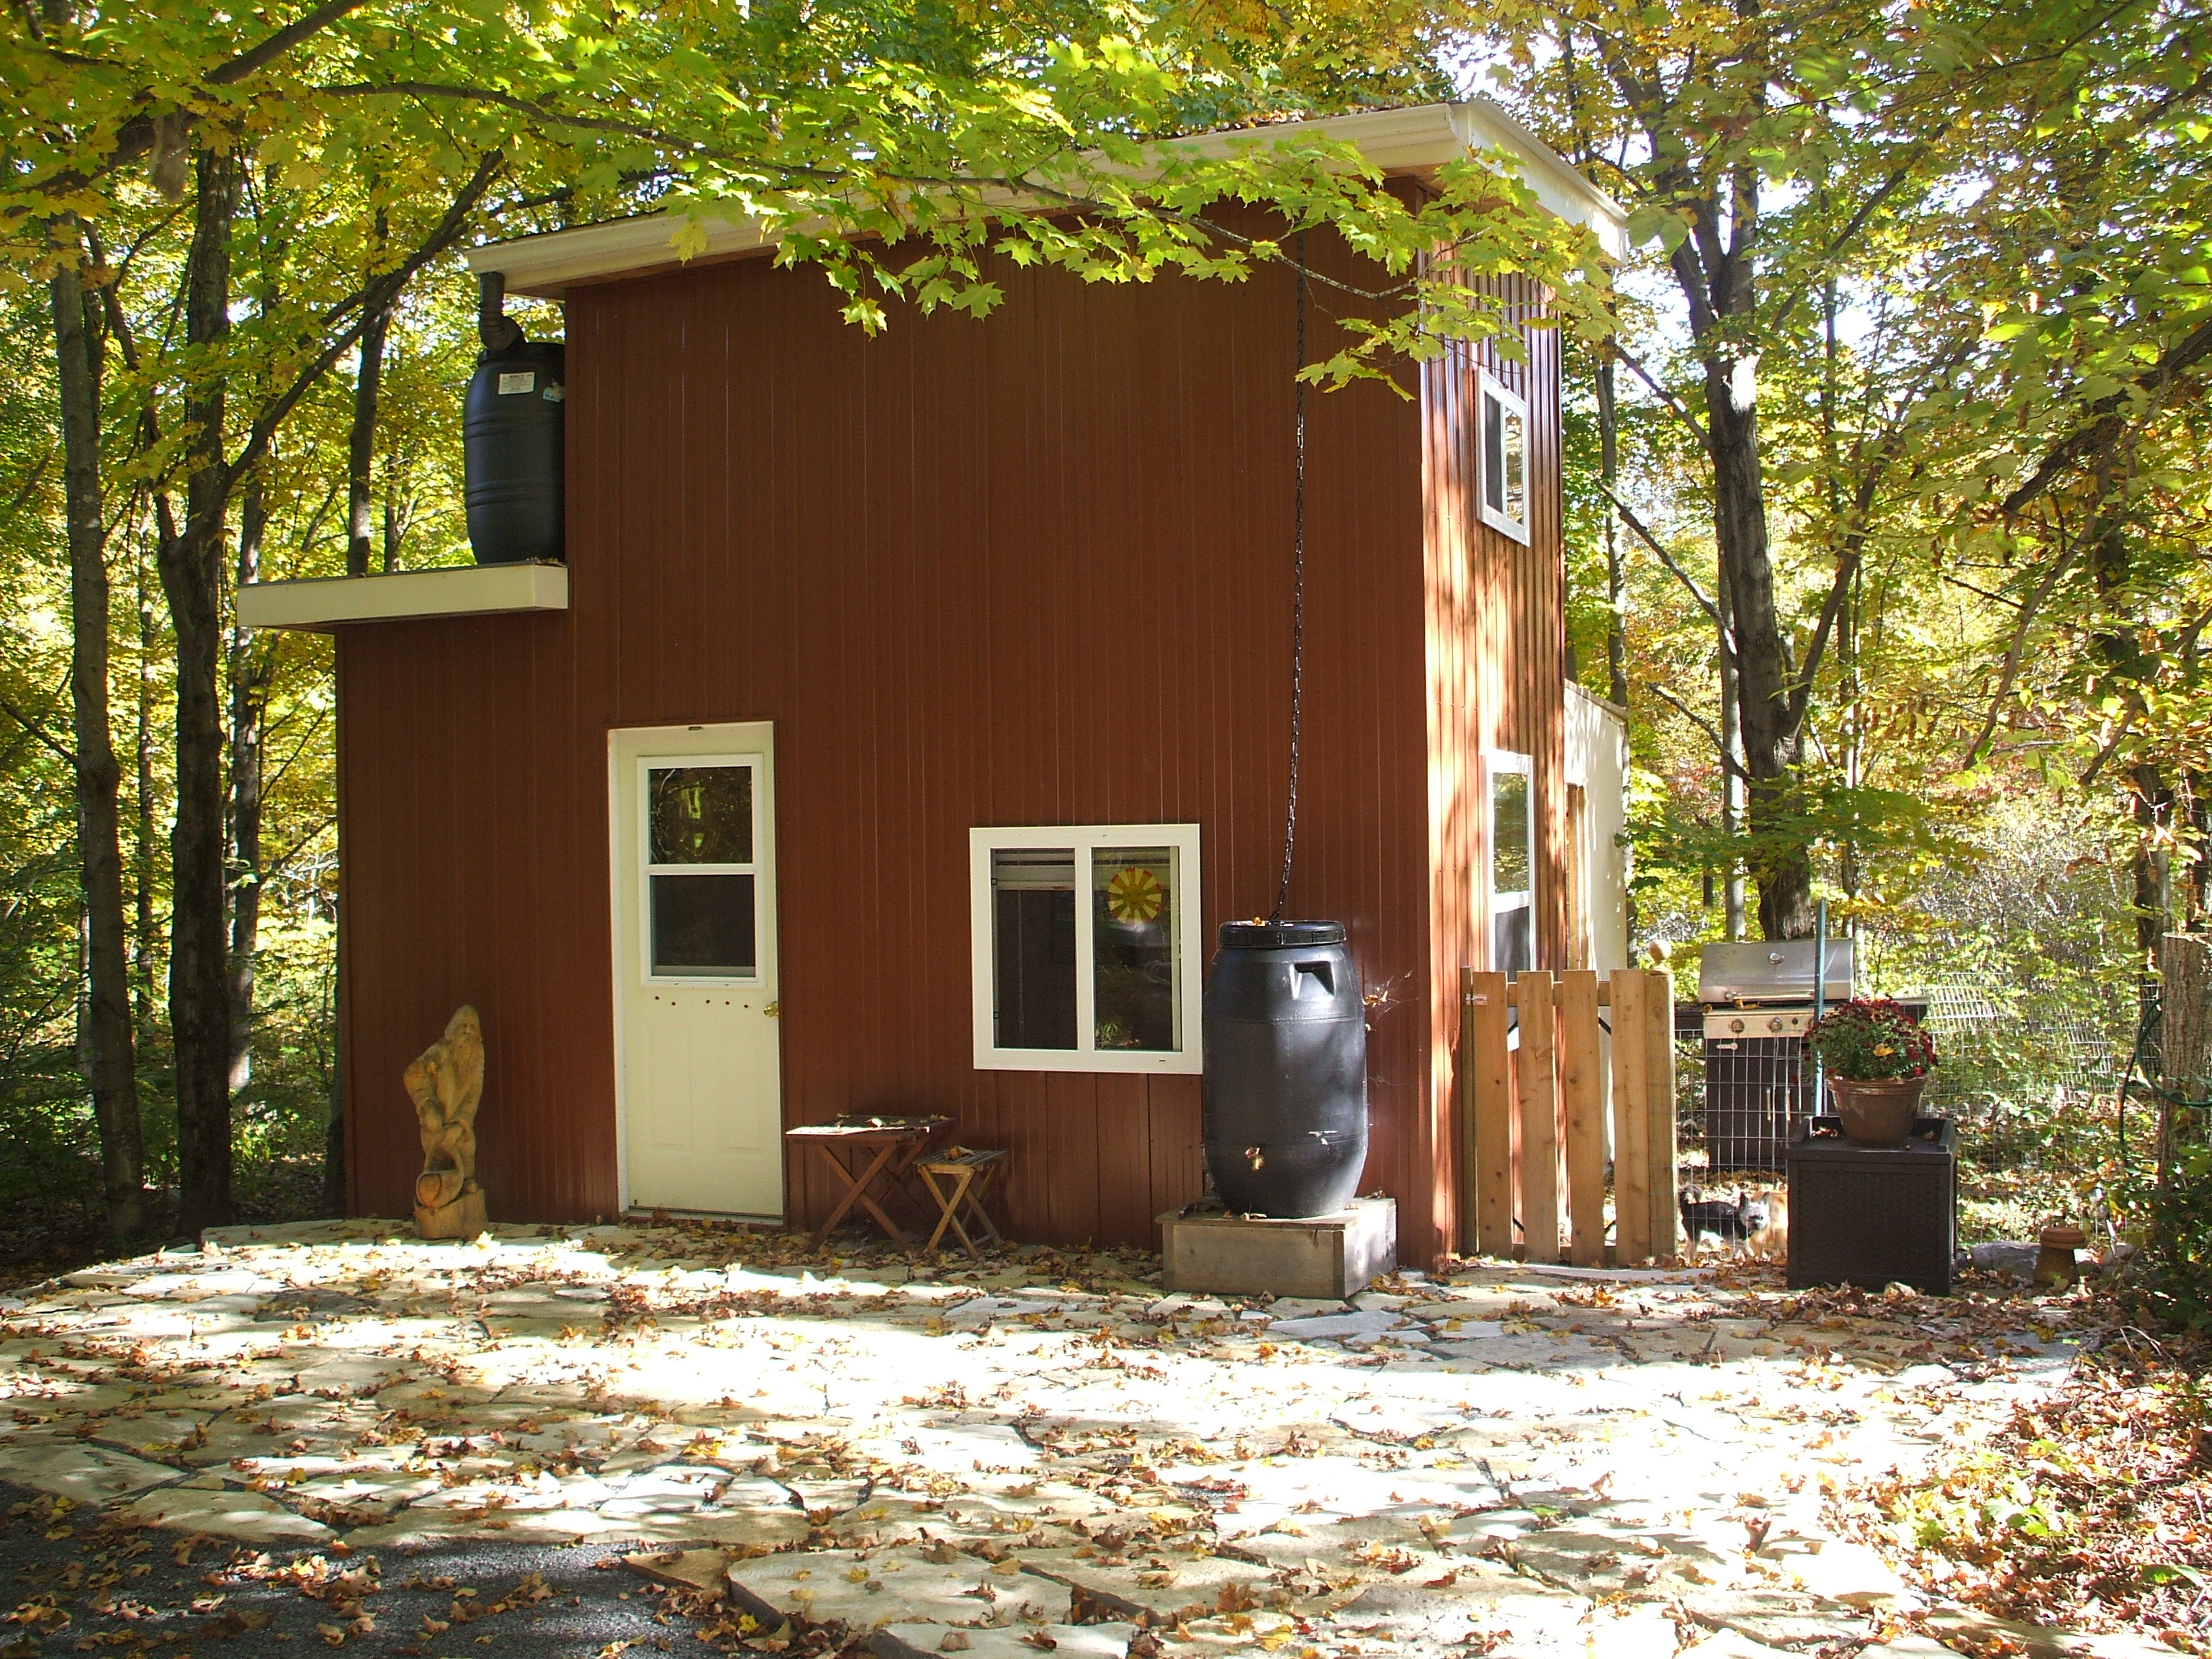 Tiny house ontario september 2013 for Tiny house builders ontario